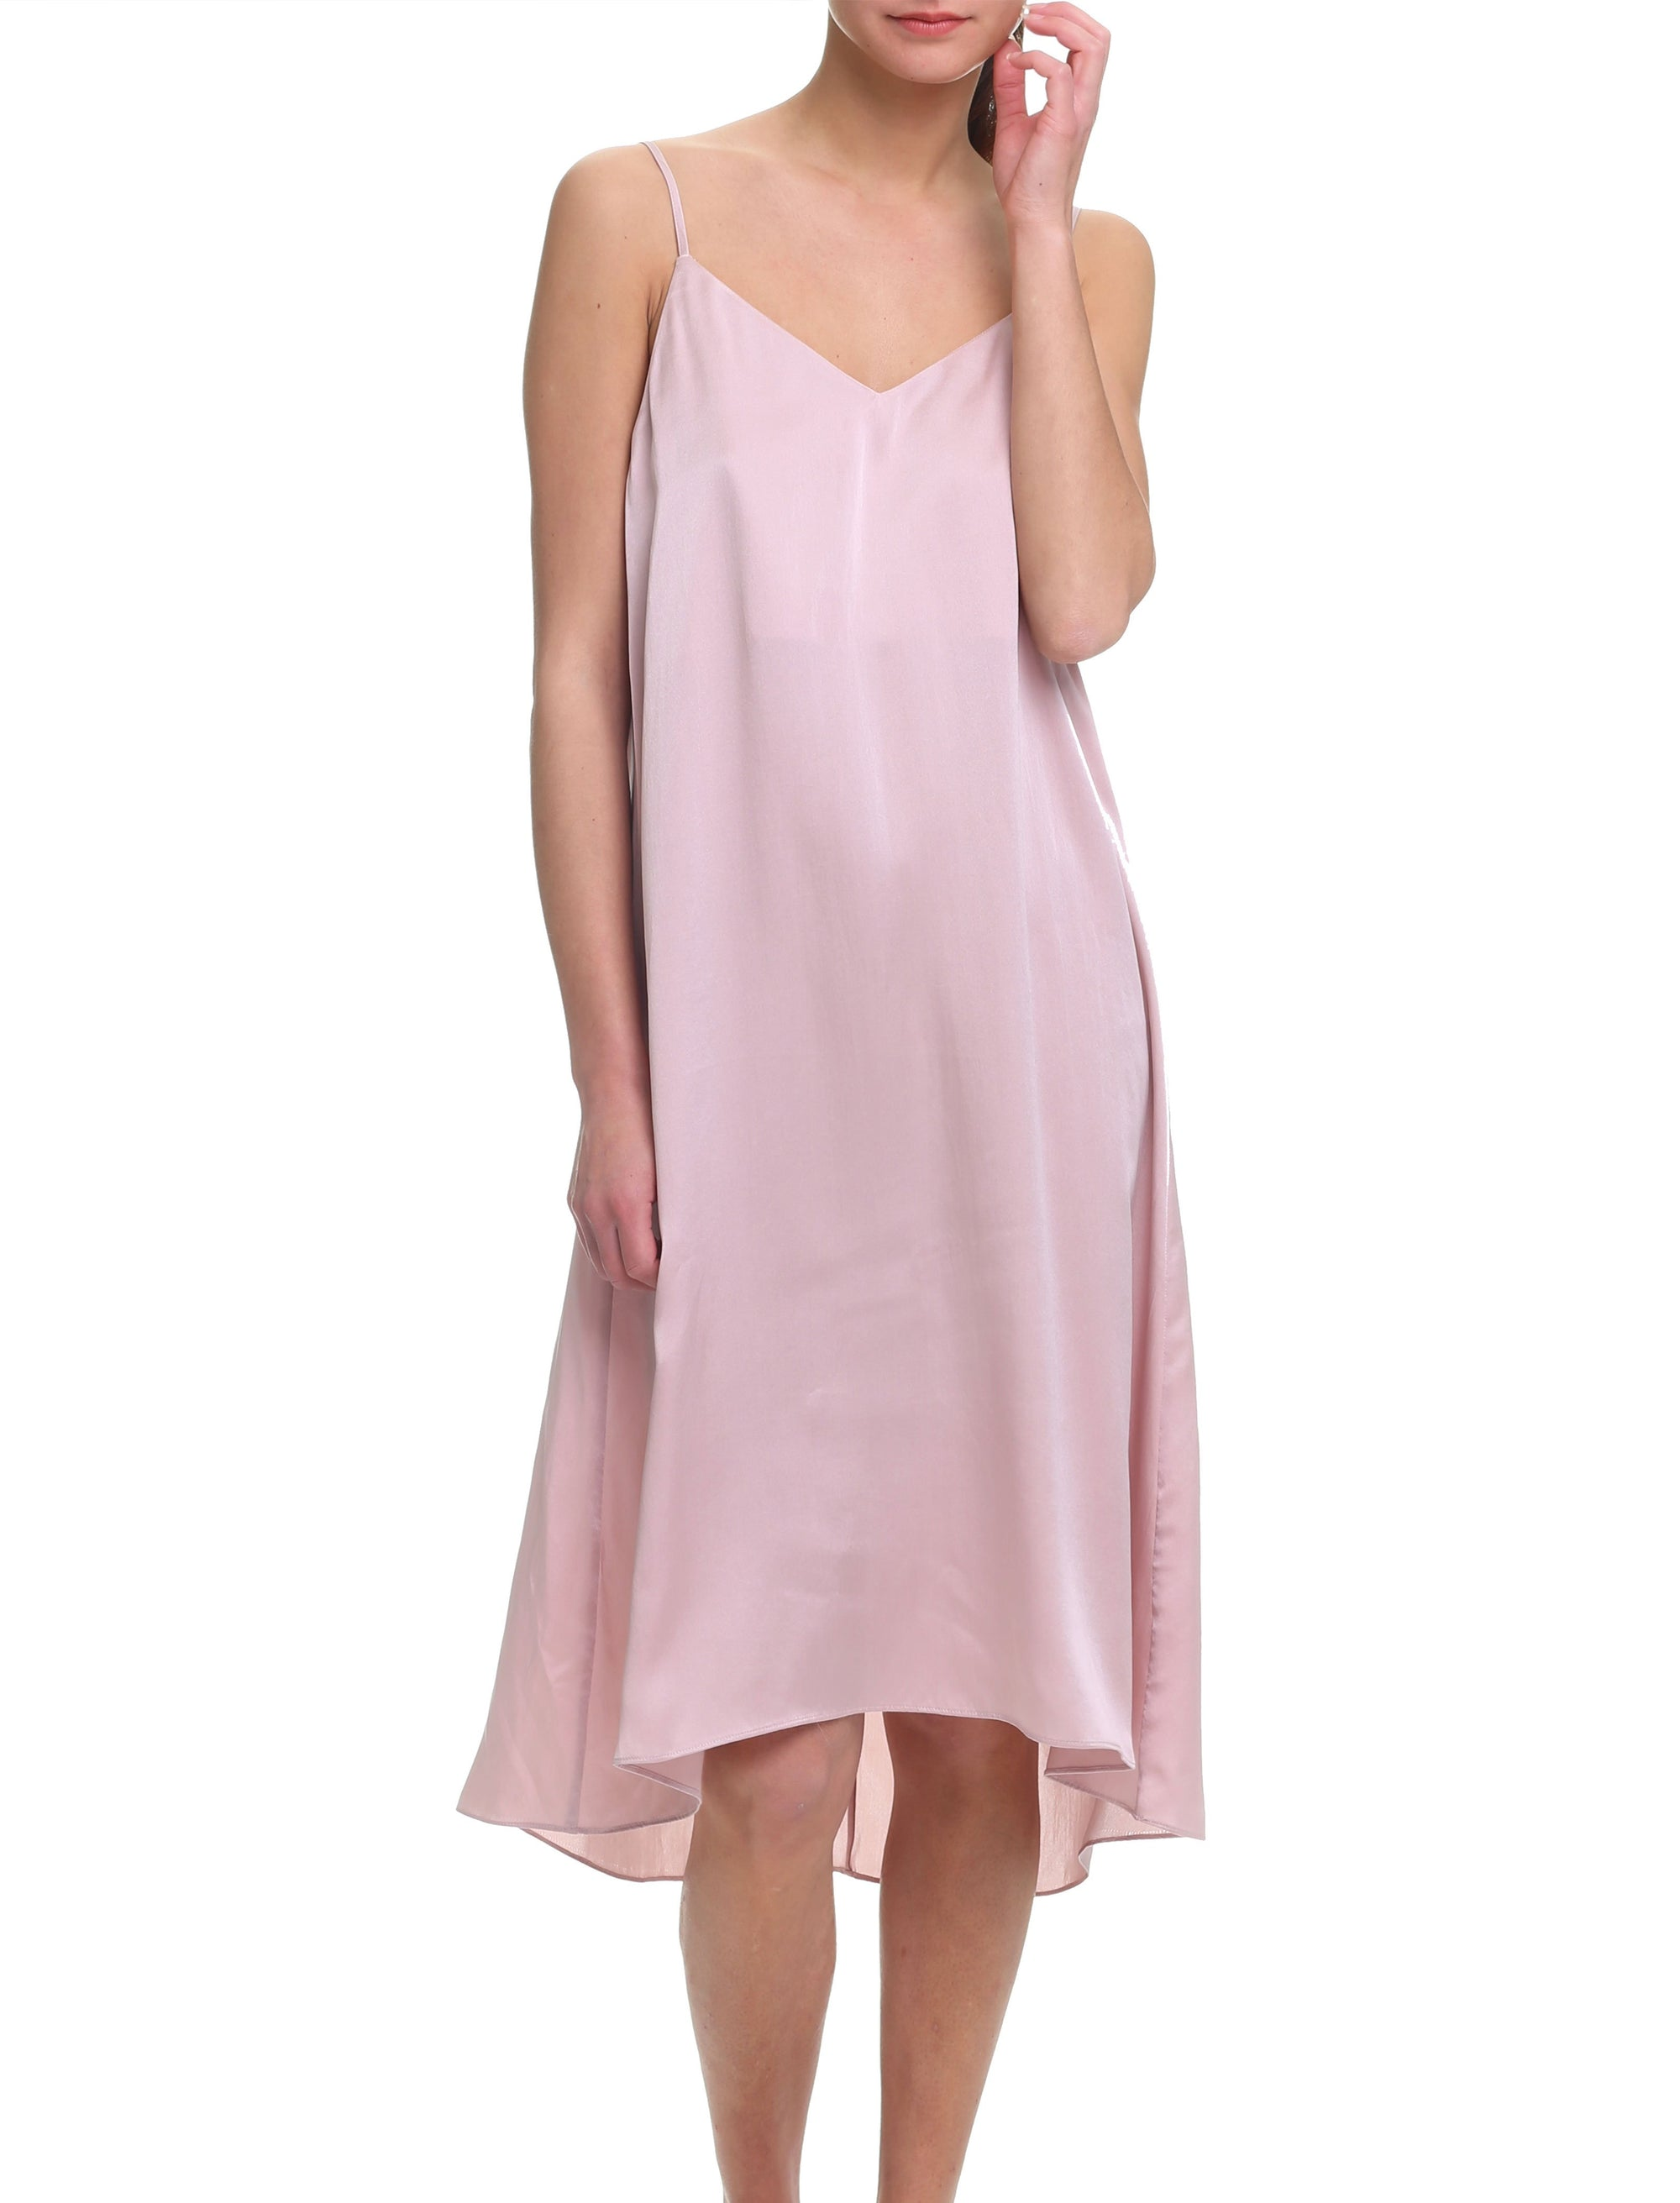 Washable Silk Slip Nightgown in Musk